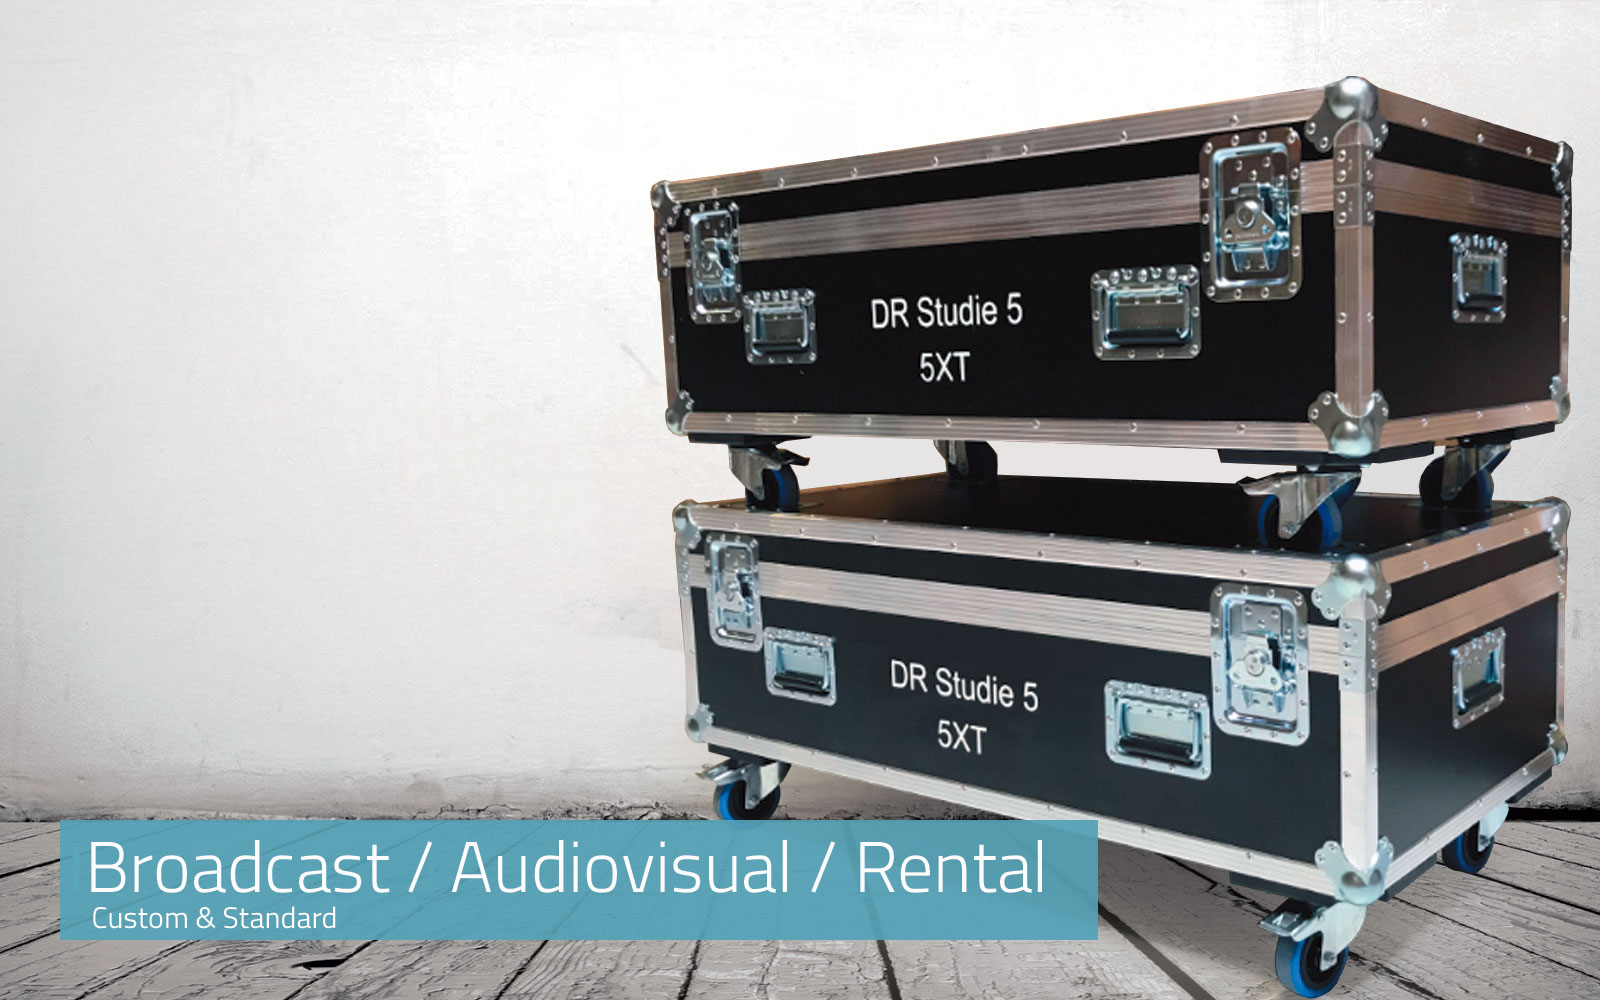 Cases for Broadcast